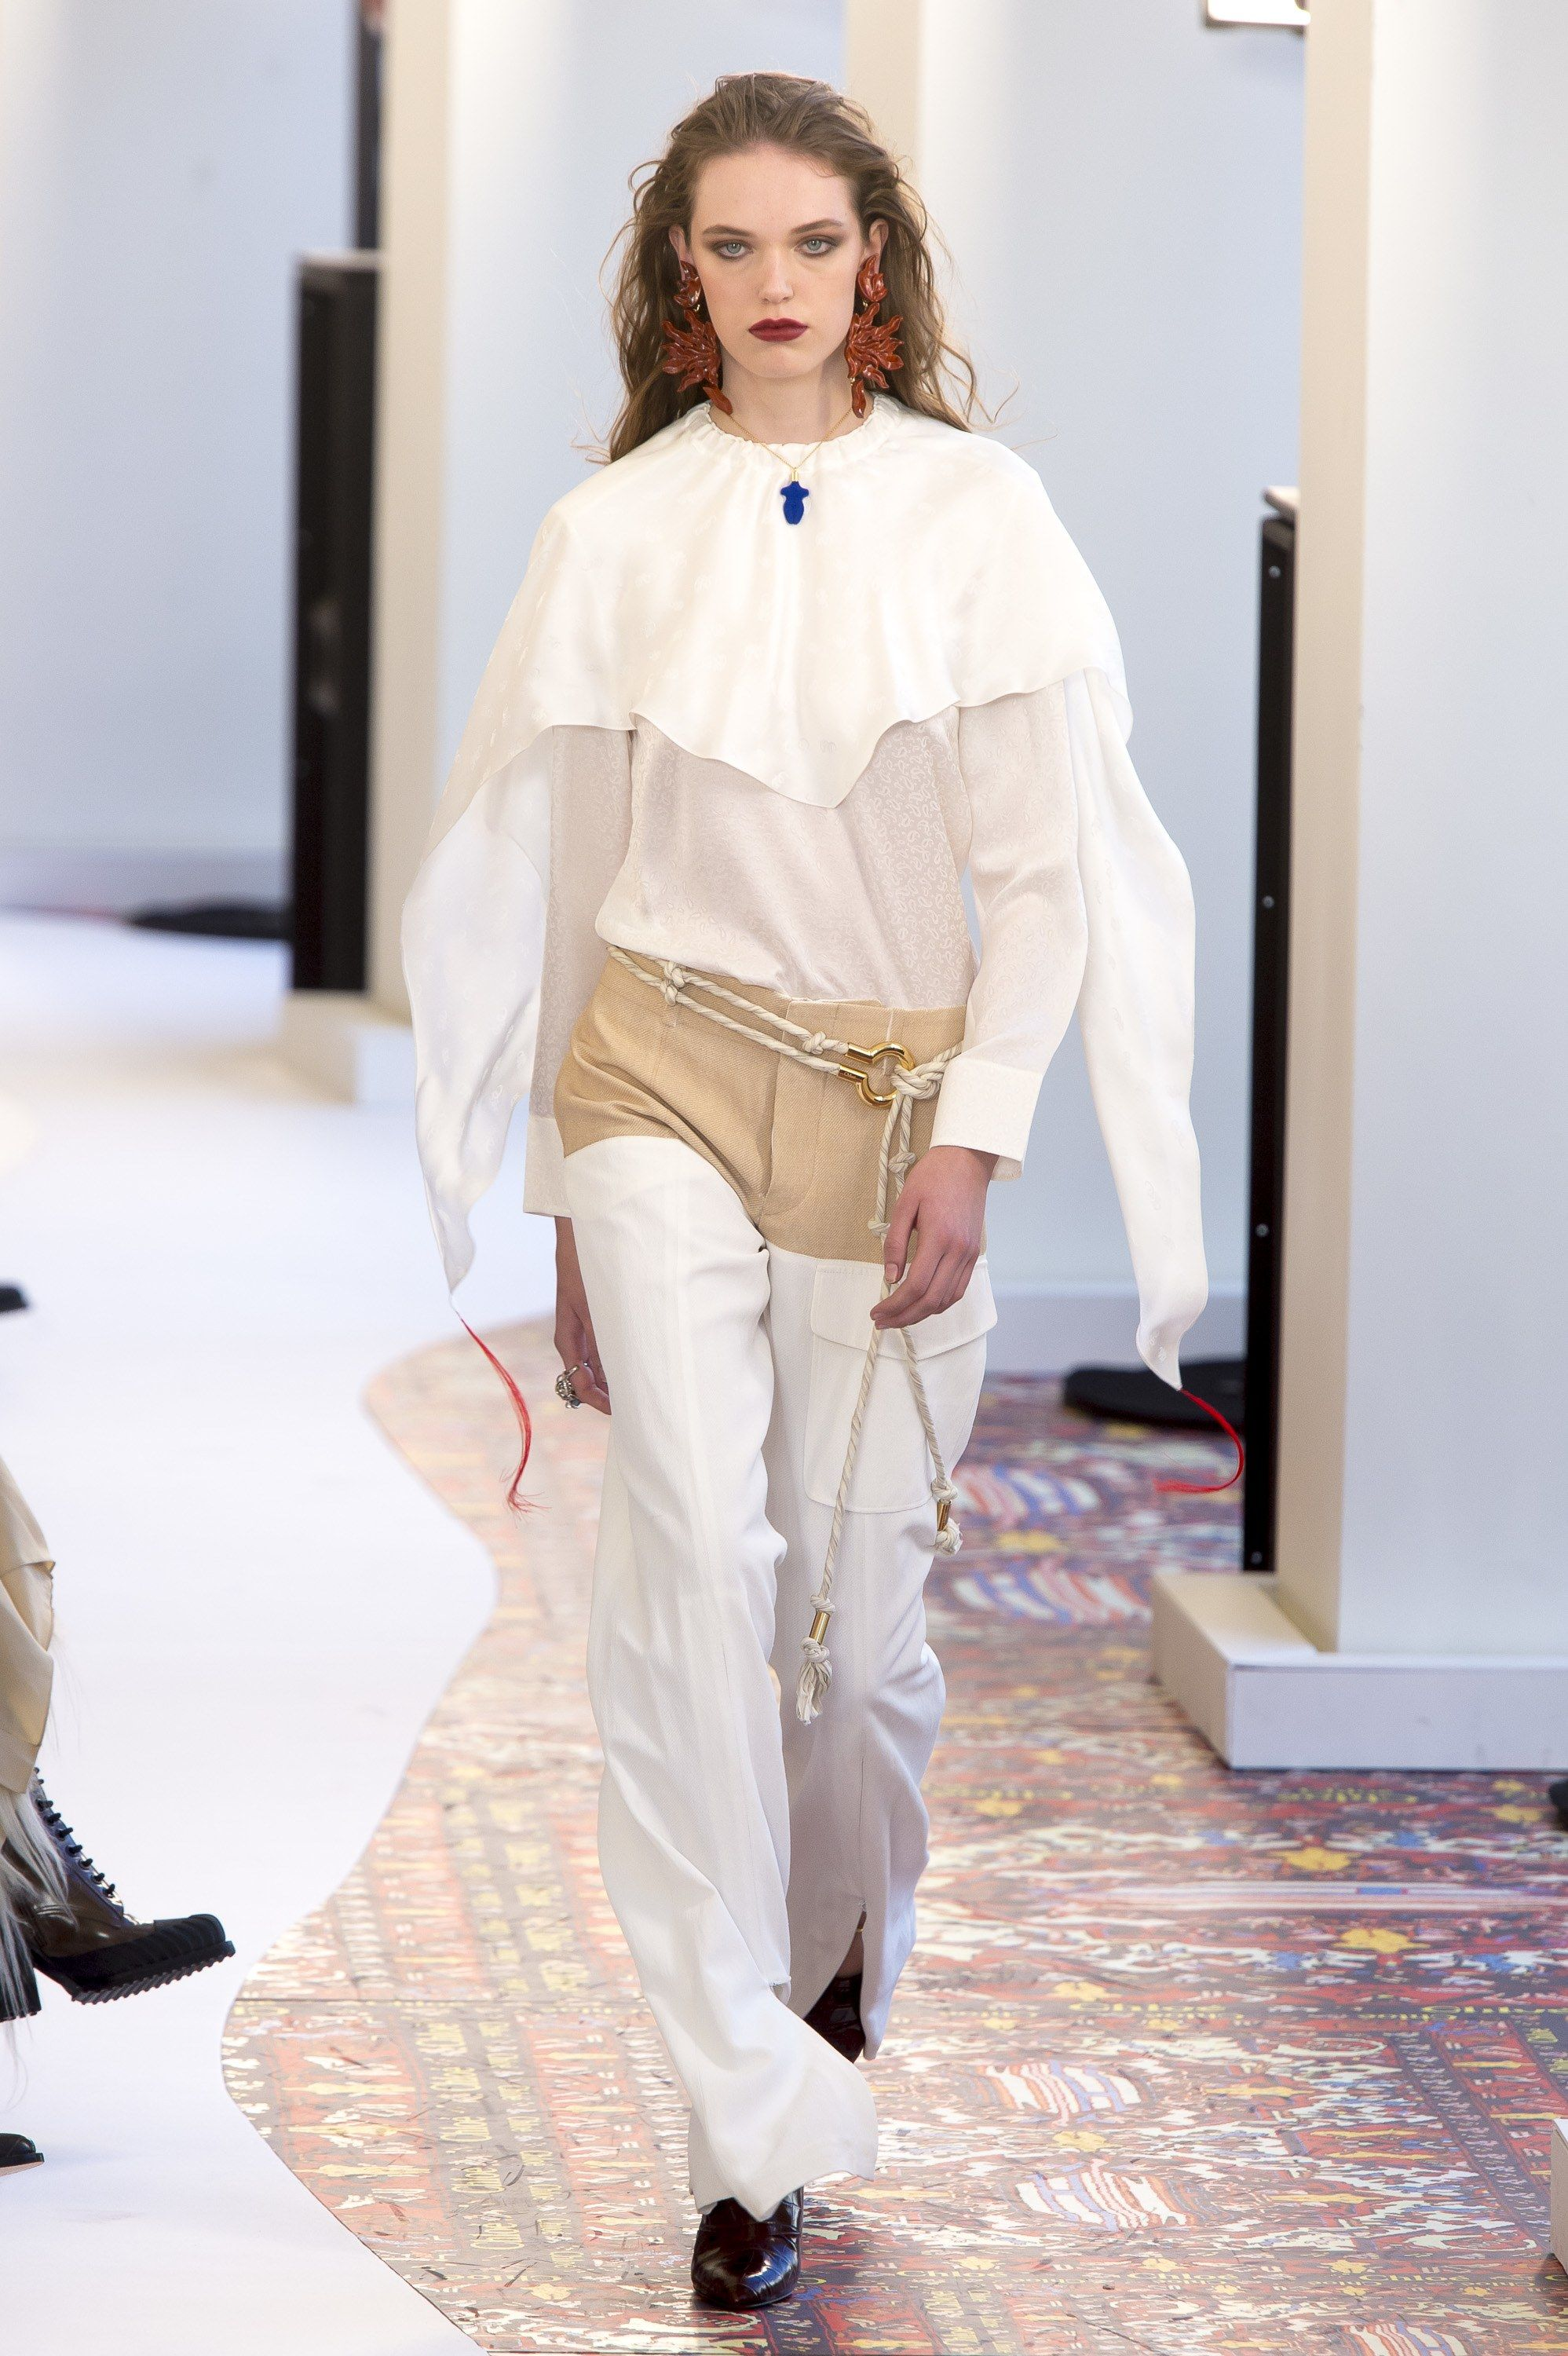 7472cd46f5 Chloé Spring 2019 Ready-to-Wear Fashion Show | Fashion and lifestyle ...